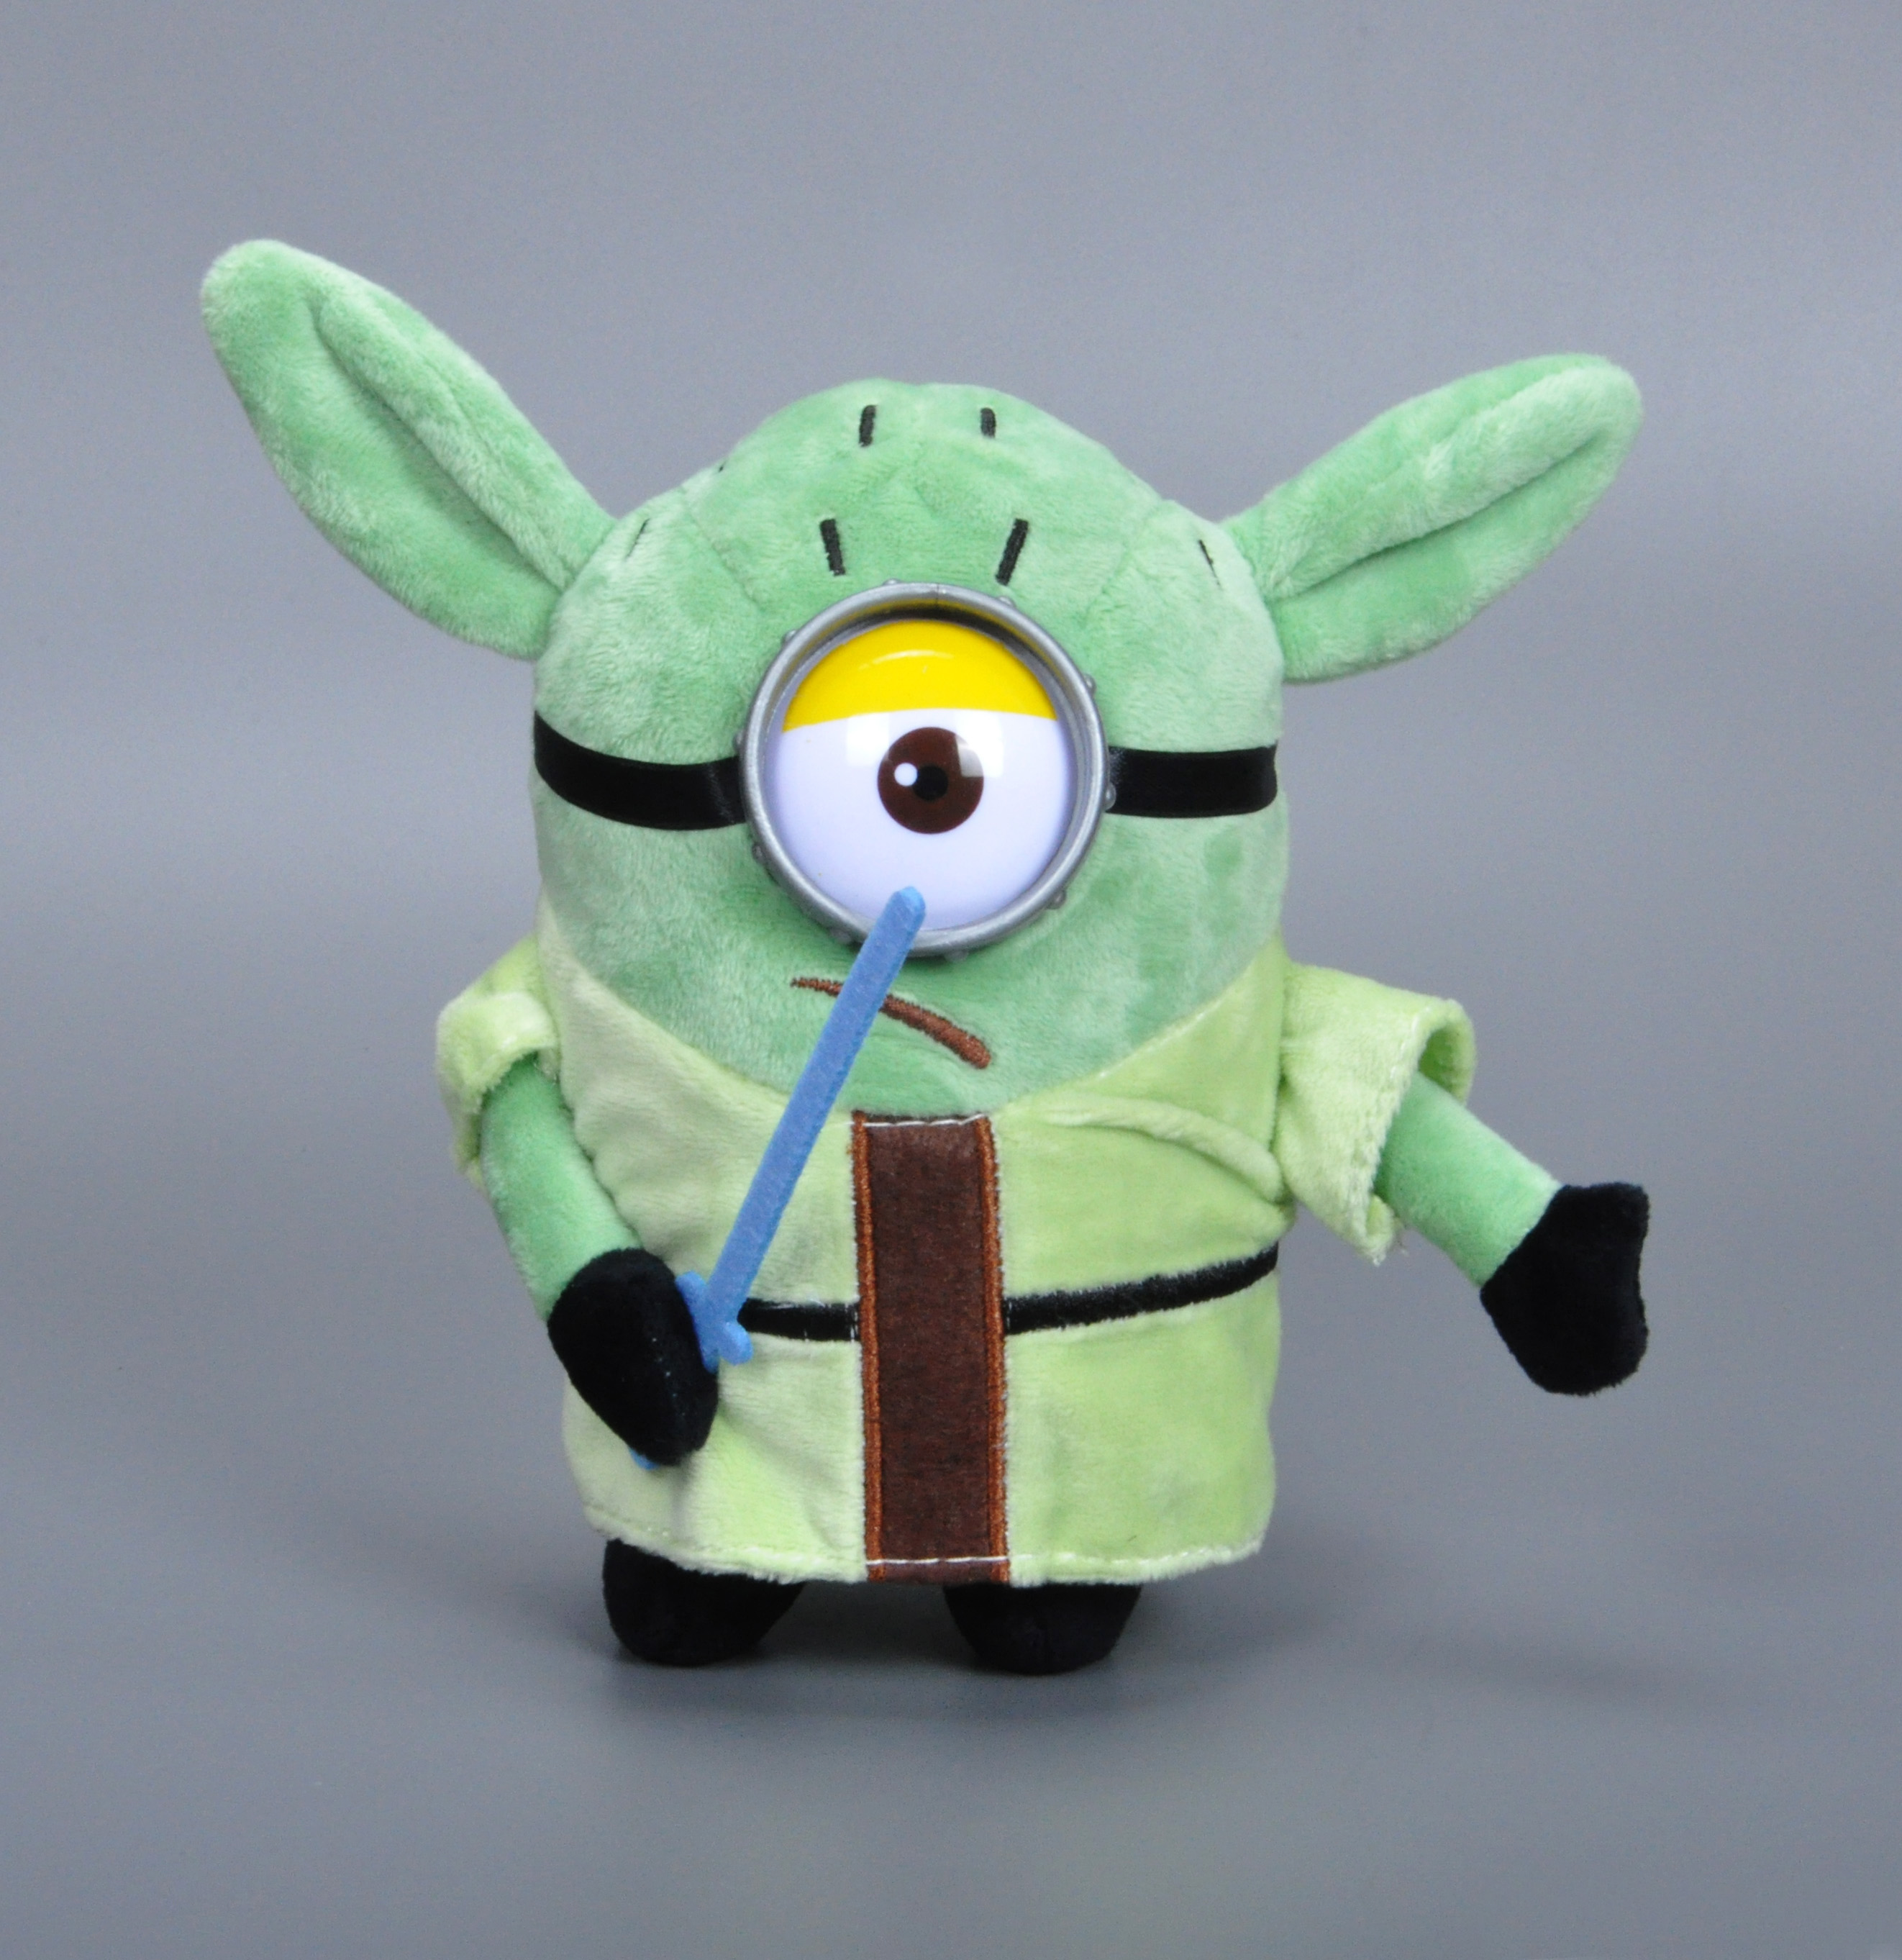 Soft toy - an important attribute in the development of the child